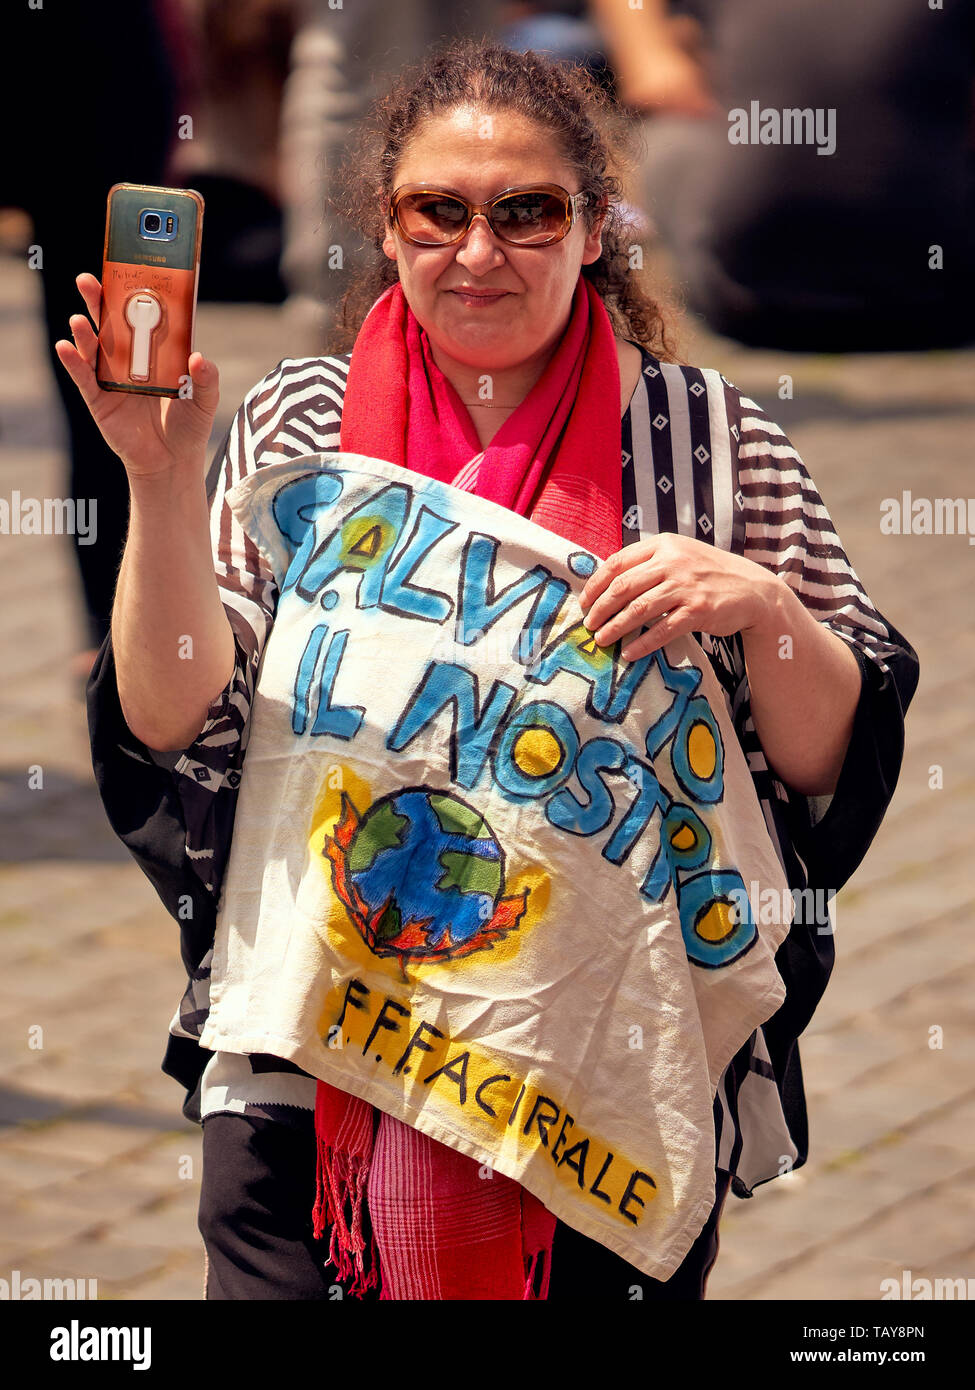 ROME, ITALY - May 24, 2019: Old lady protesting at Global Strike for Future, Fridays for Future near the Colosseum. Funny writing on her phone cover - Stock Image